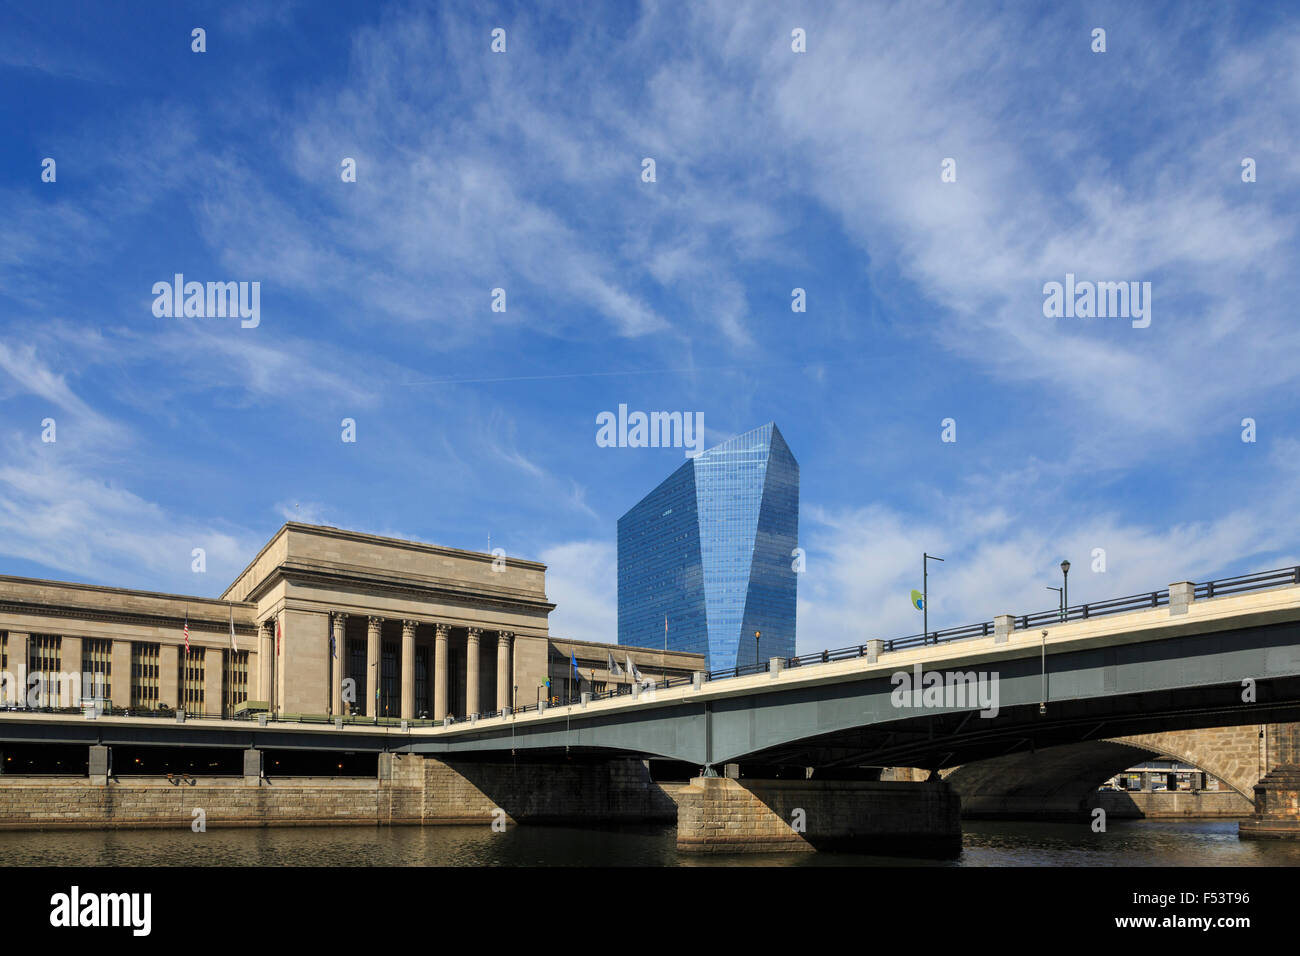 30th Street Train Station and Cira Center, University City, Philadelphia, Pennsylvania Stock Photo